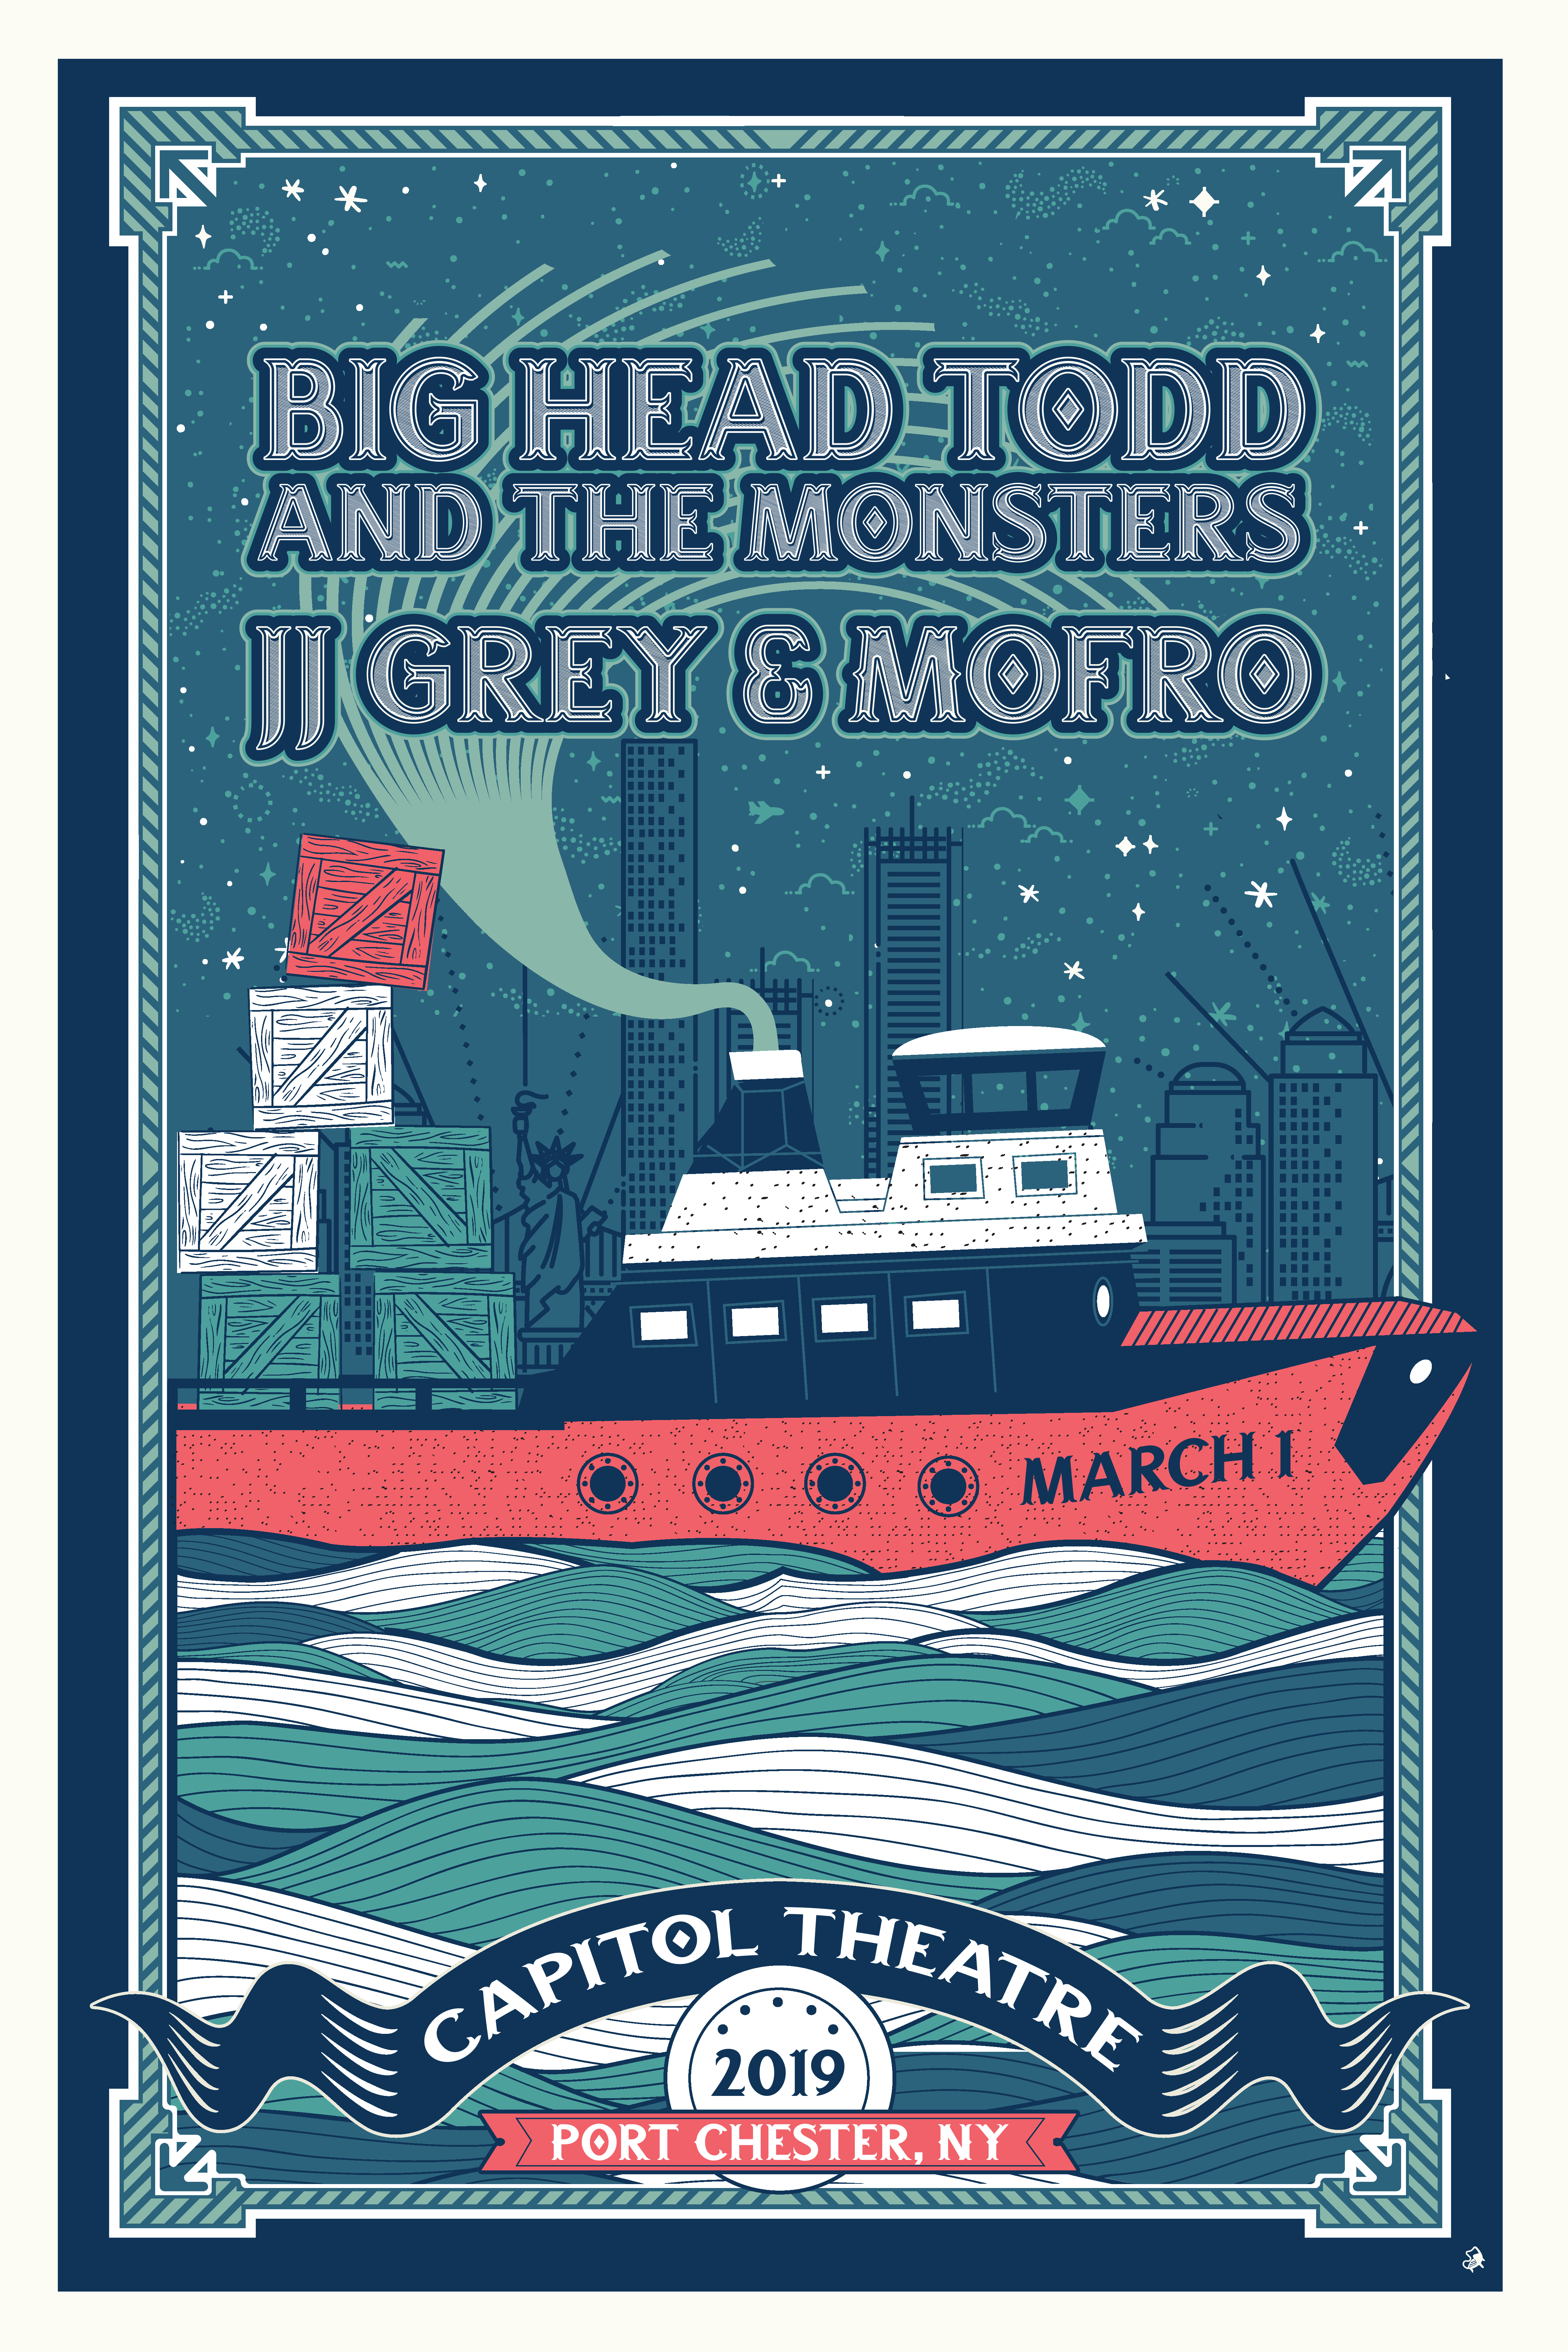 BHTM + JJ Grey & Mofro on Mar. 1!